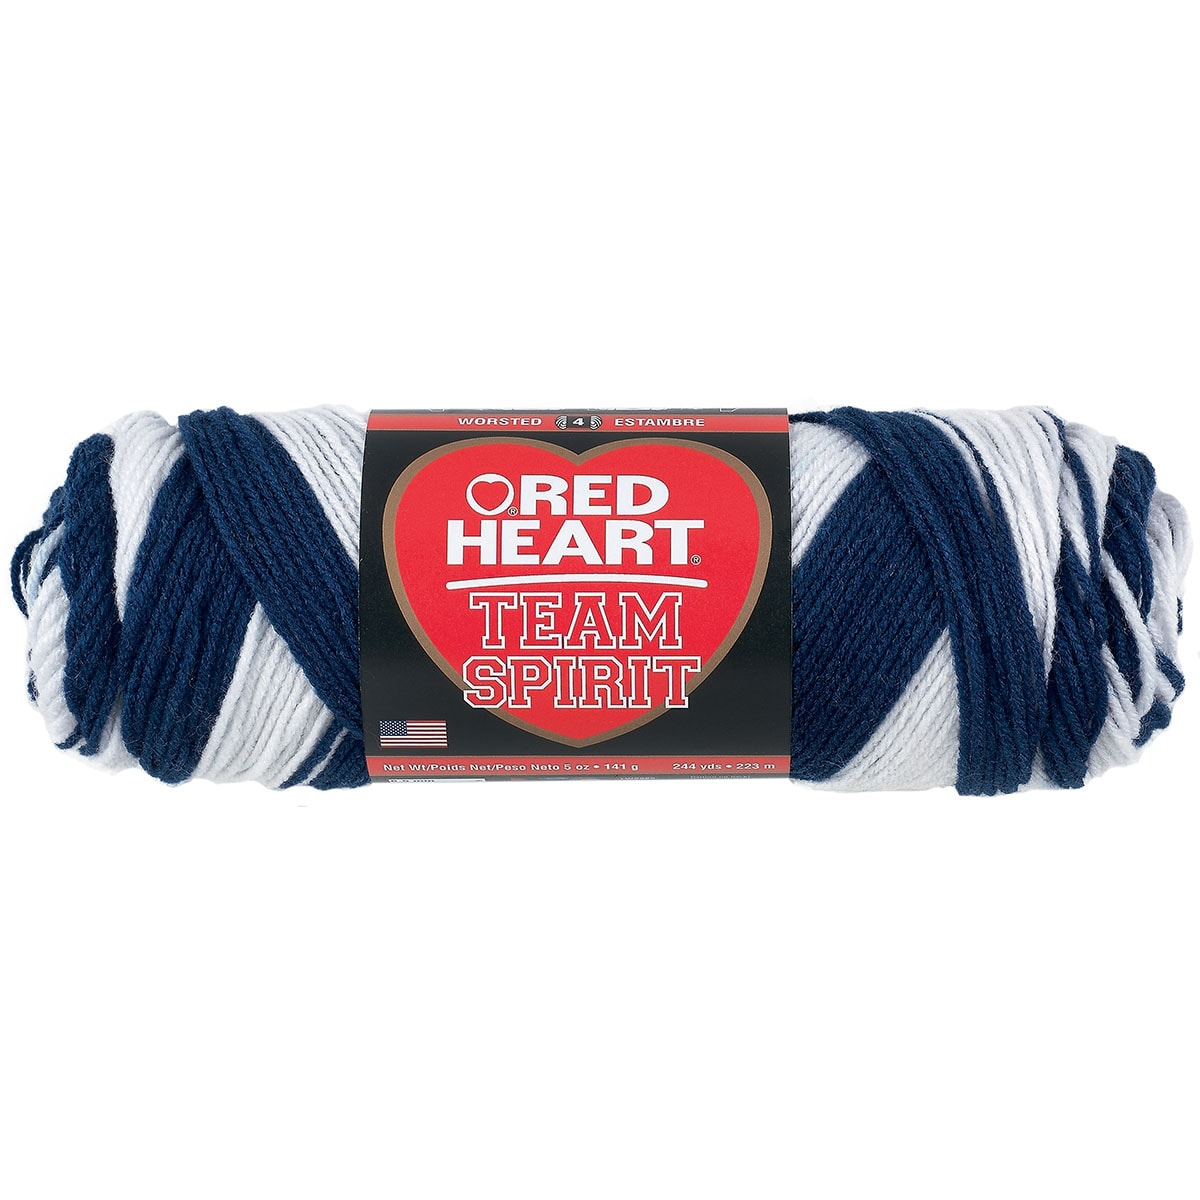 Red Heart Team Spirit YarnNavy & White